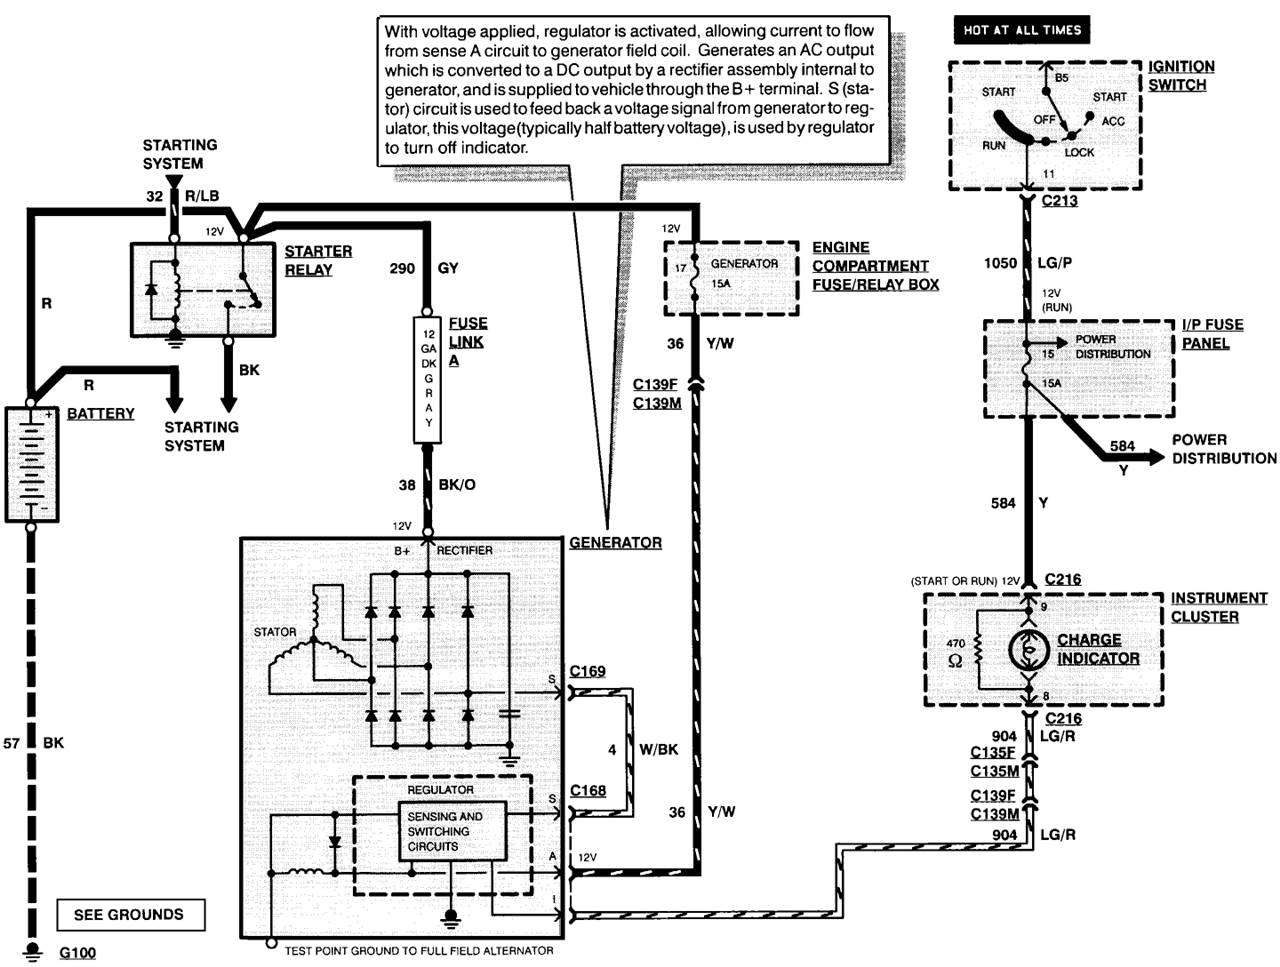 ford 6g alternator wiring best part of wiring diagram